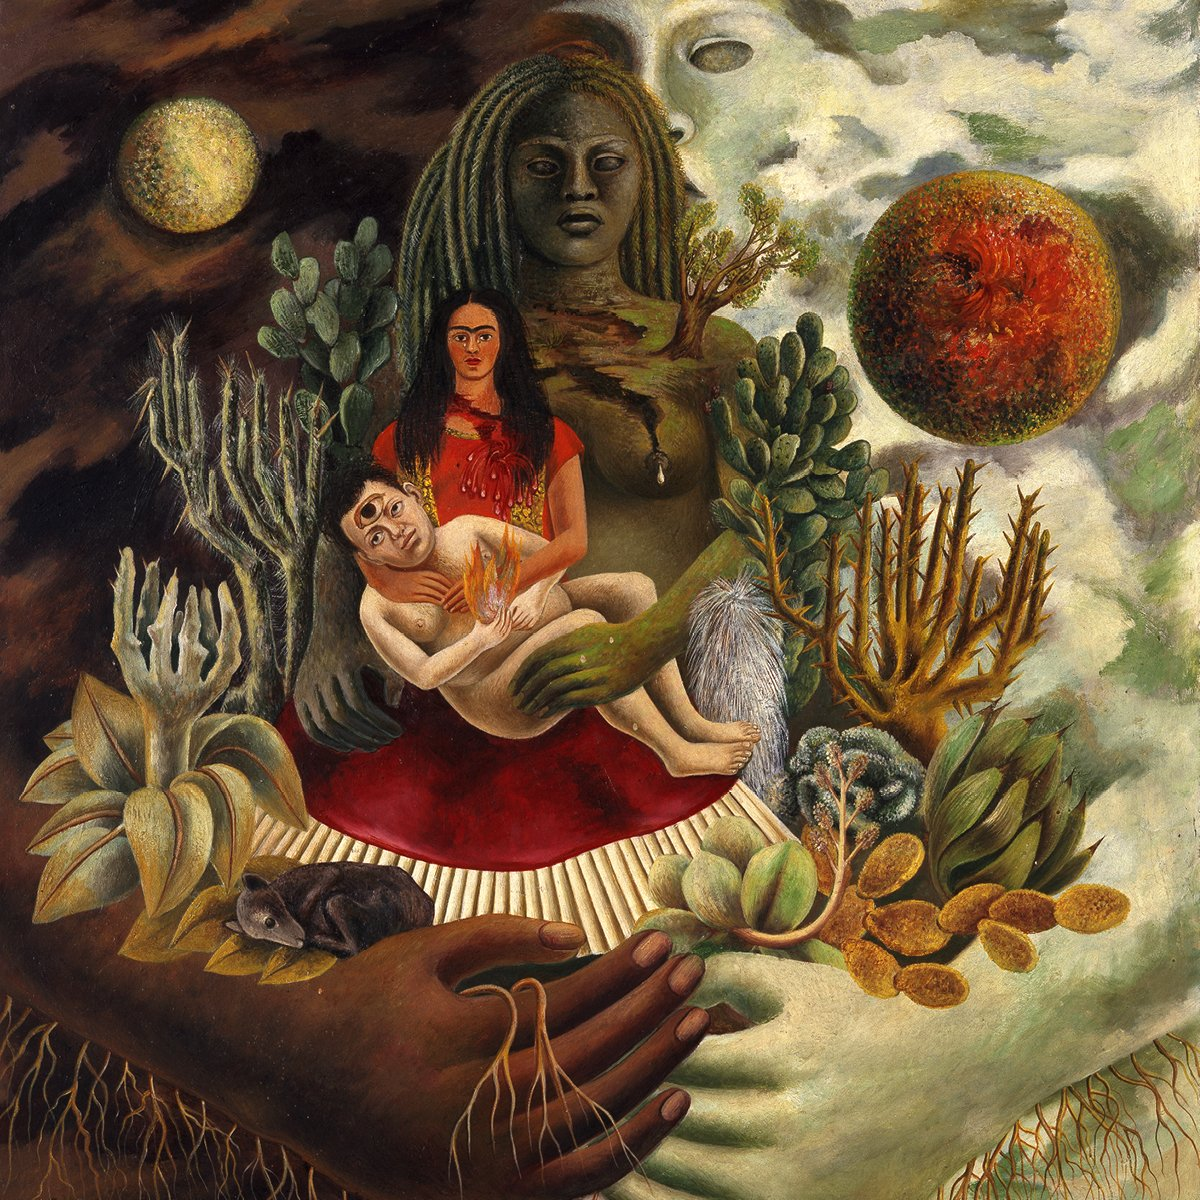 frida kahlo art The smithsonian's archives of american art brings photographs and letters  together in frida kahlo: notas sobre una vida / notes on a life  learn more.